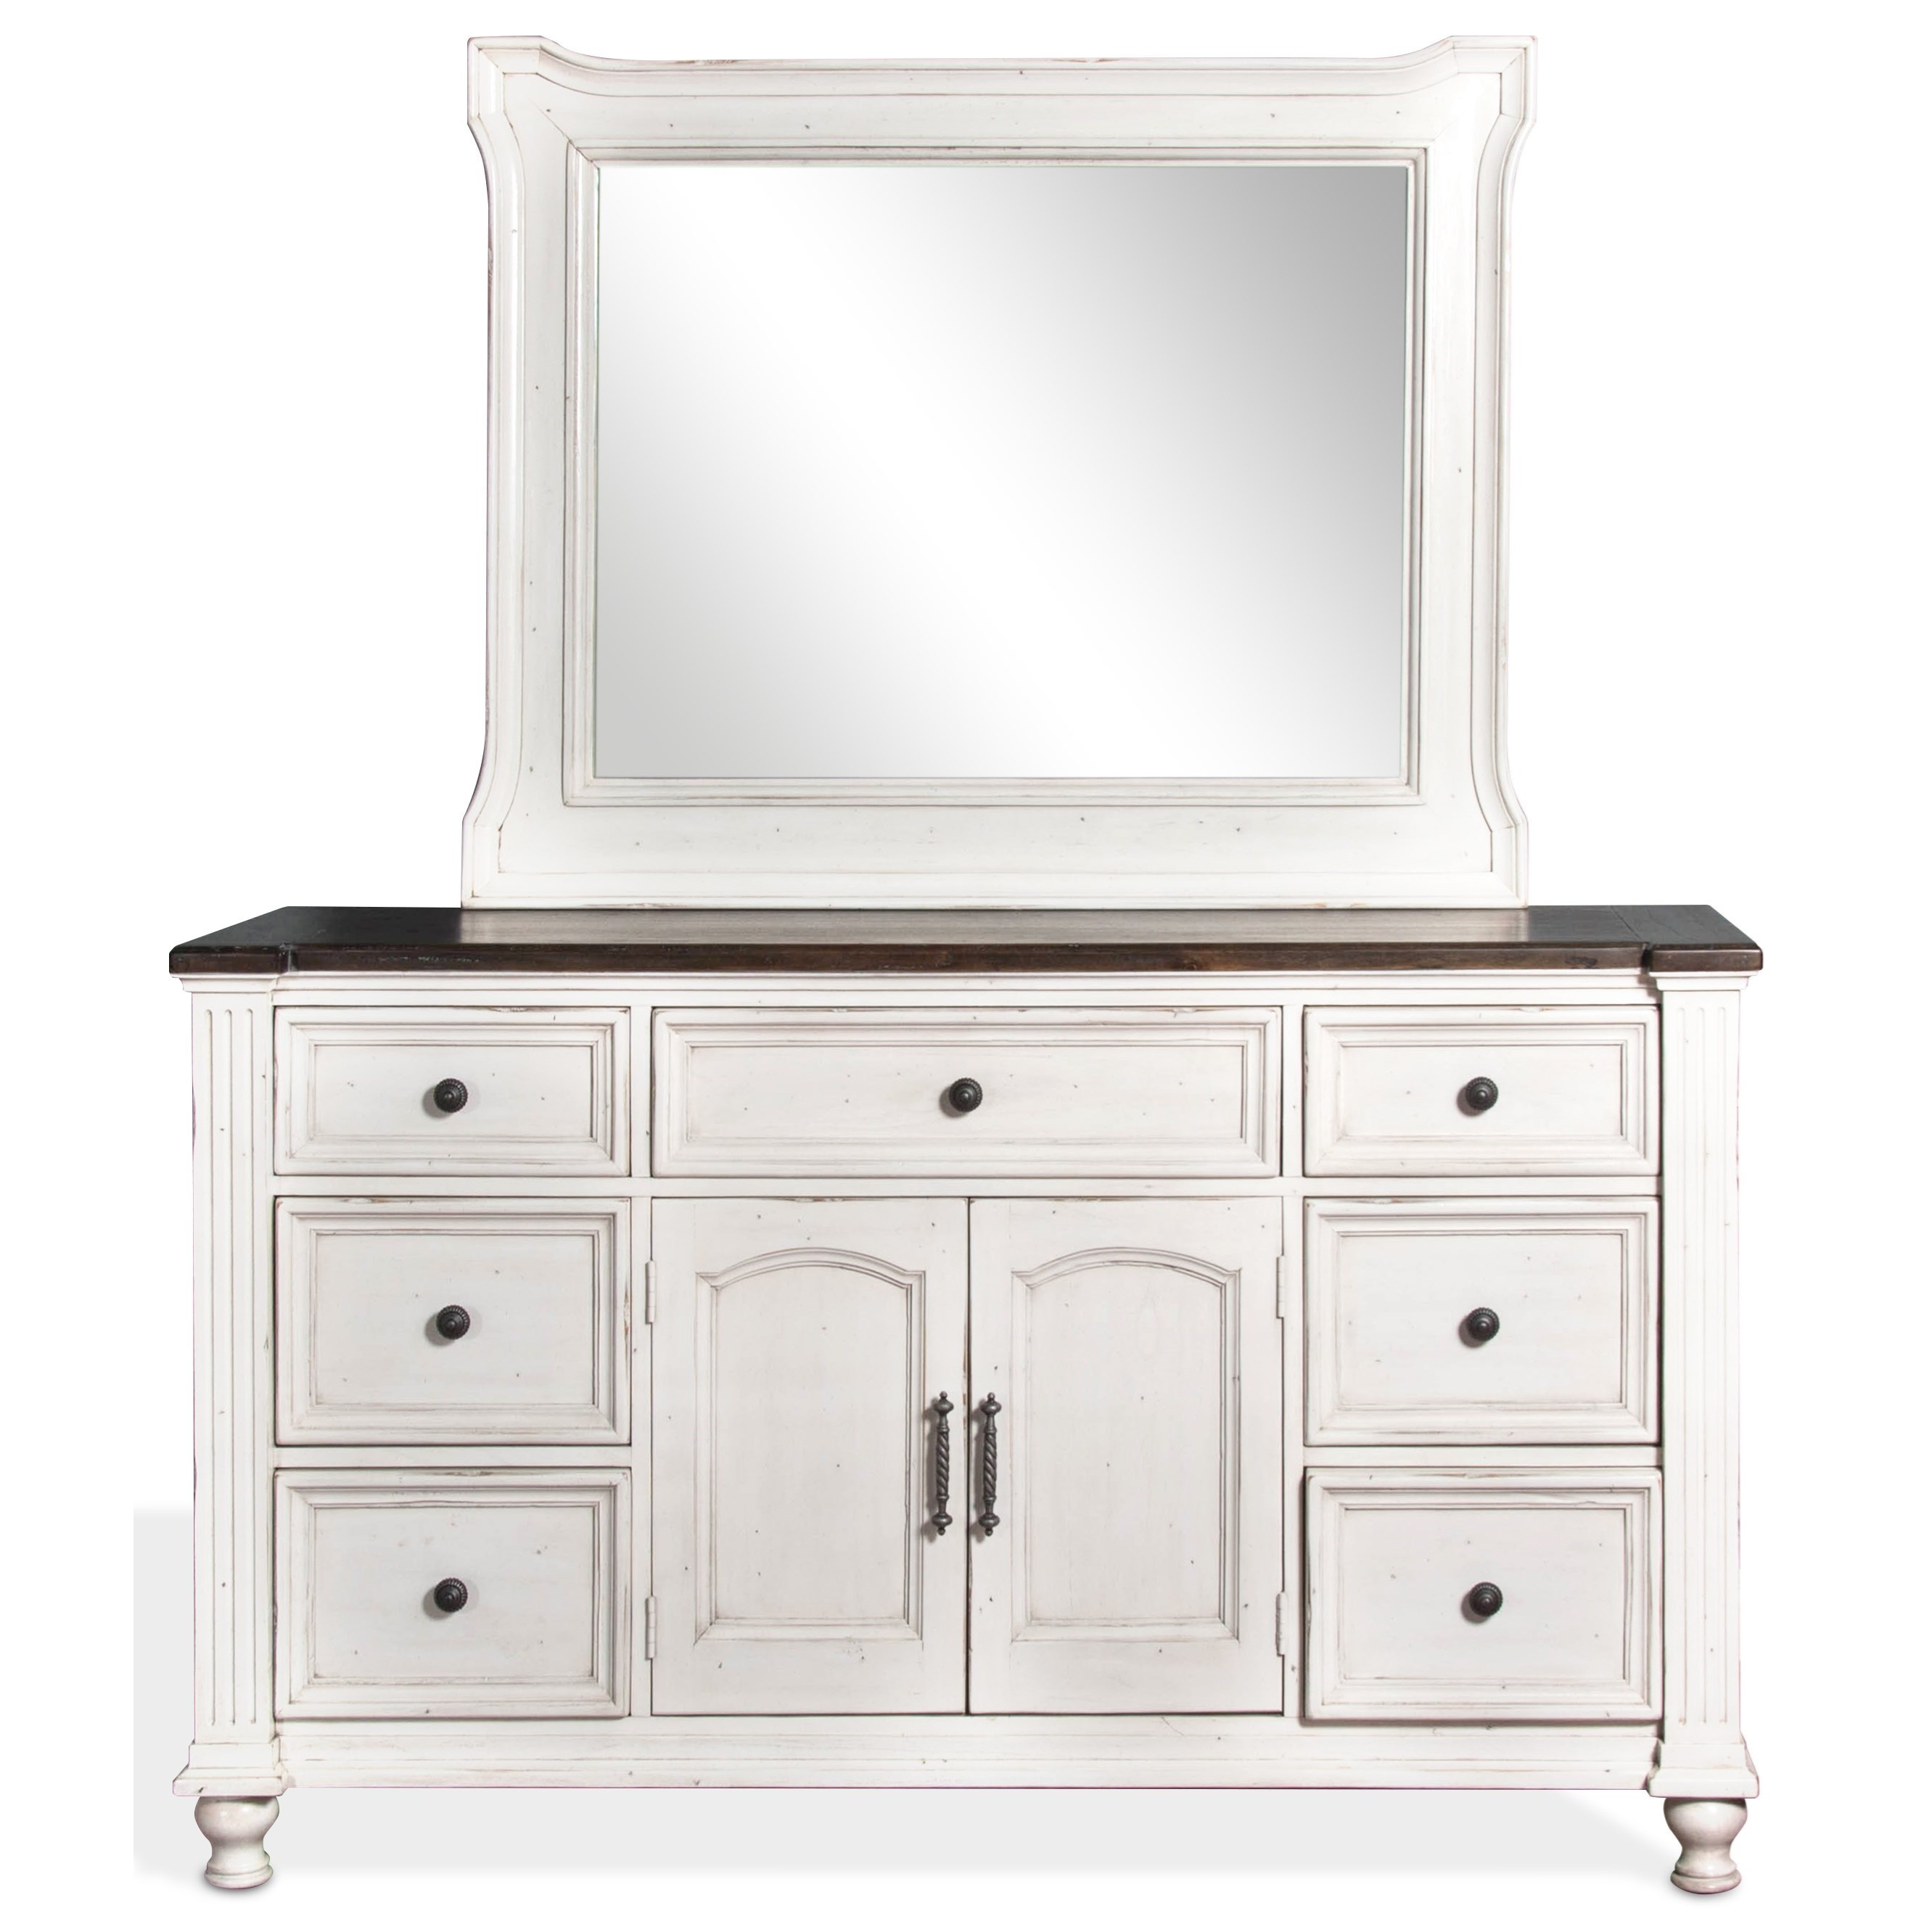 Sunny Designs Carriage House Dresser and Mirror Combo - Item Number: 2308EC-D+M